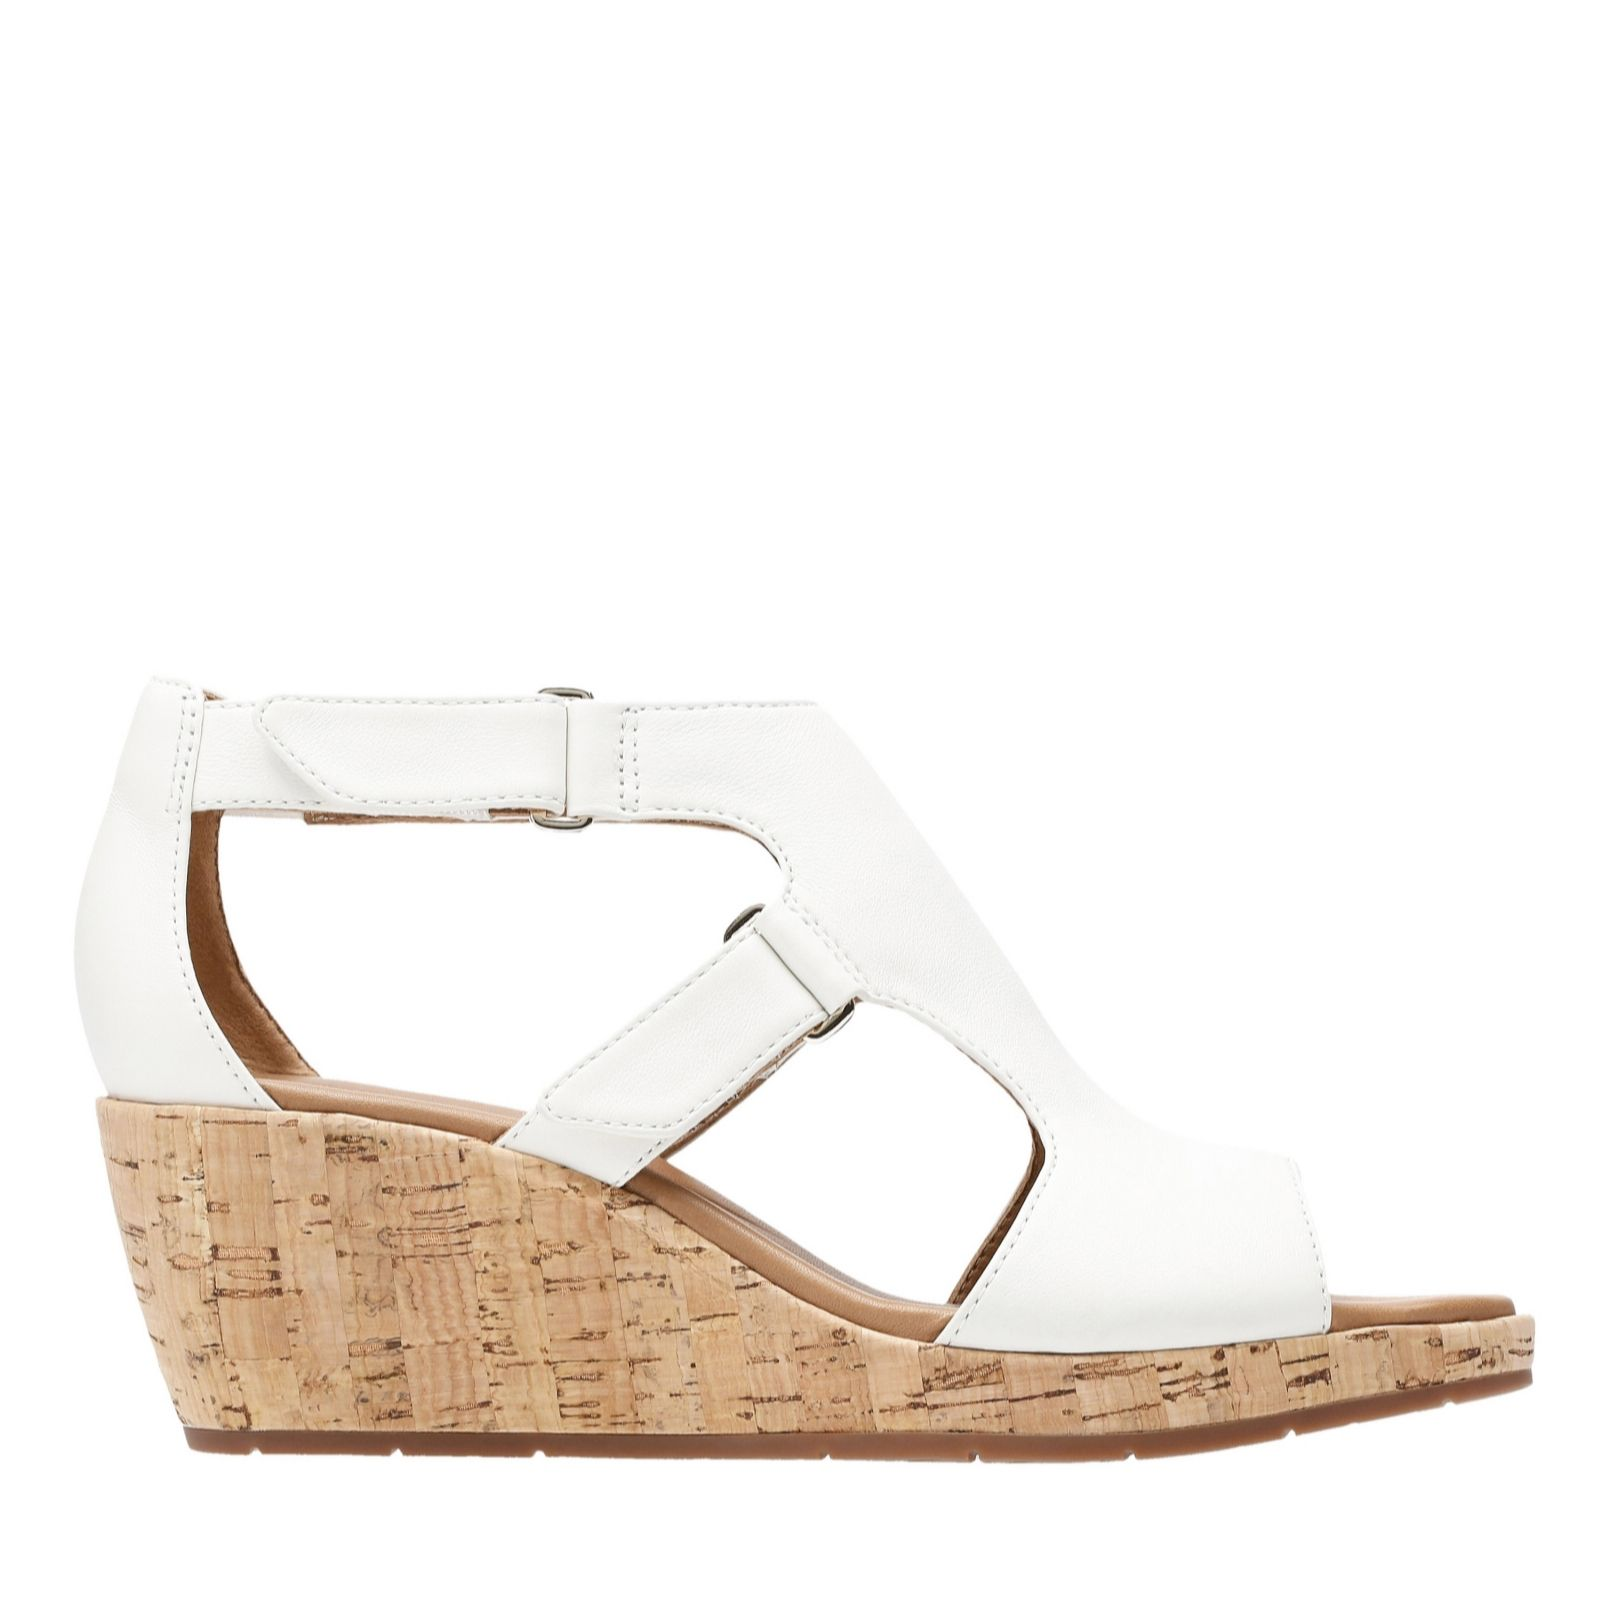 b919fd075fa Clarks Un Plaza Strap Wedge Sandal Wide Fit - QVC UK